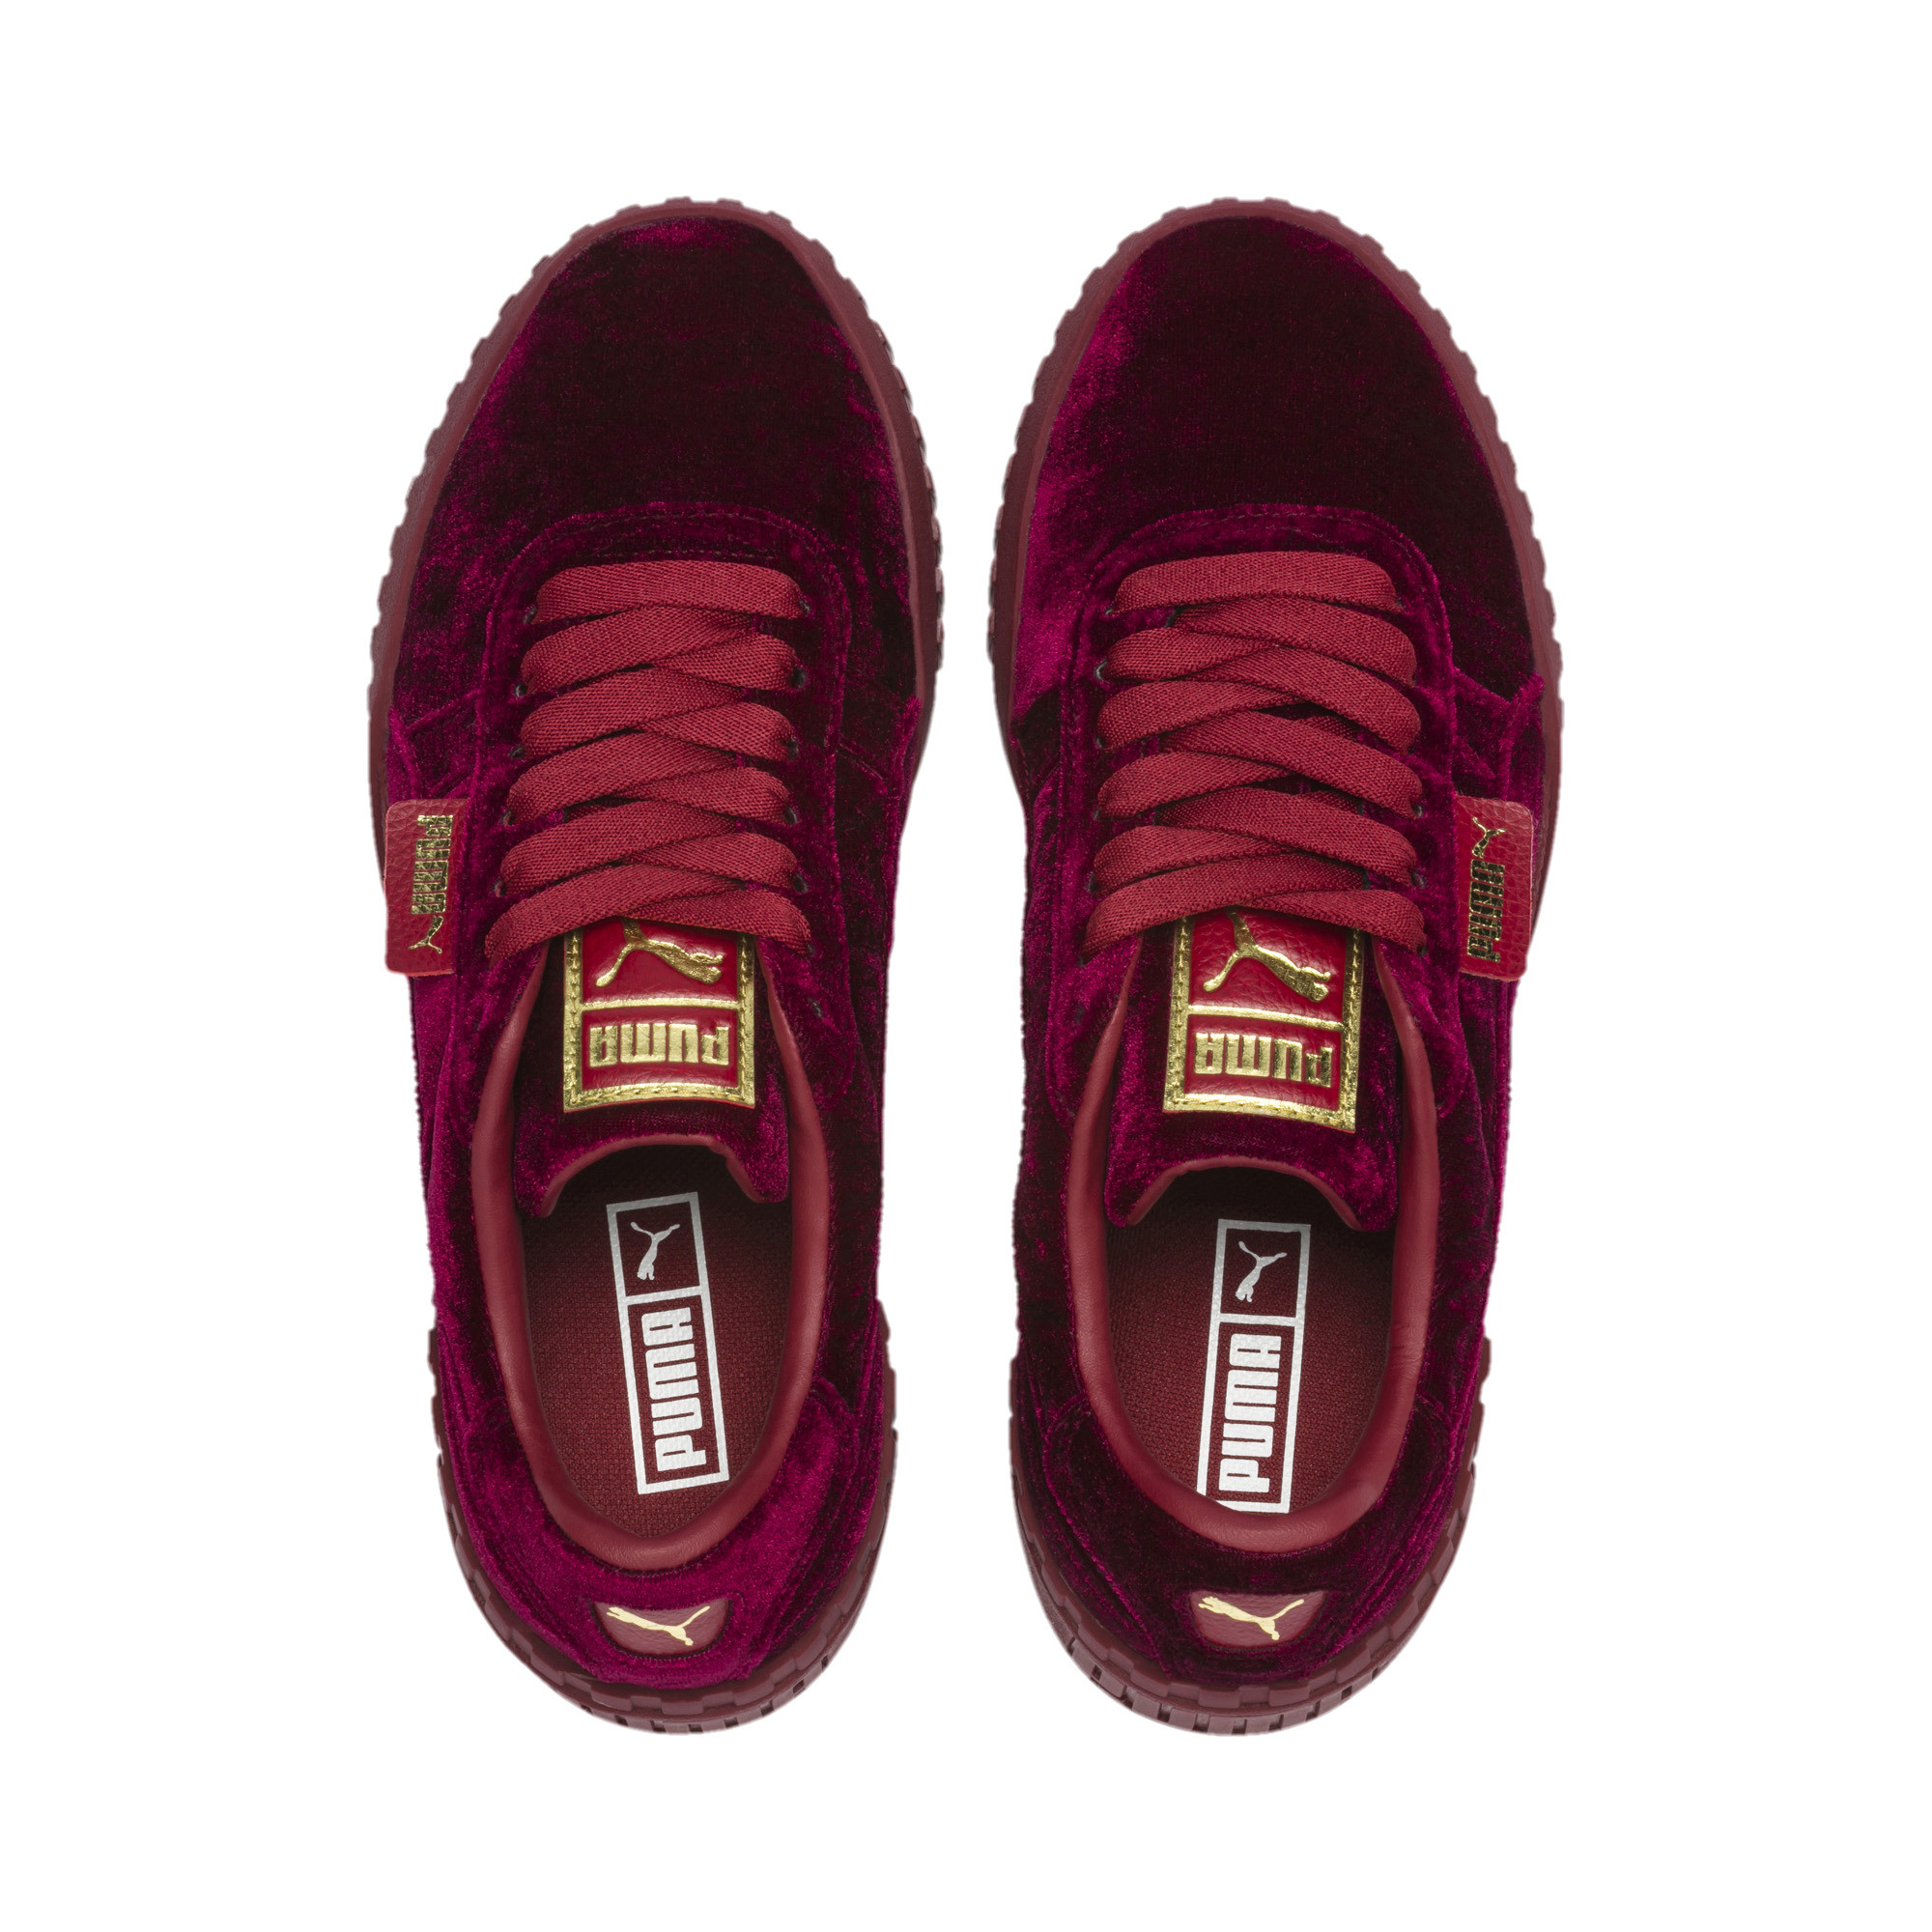 PUMA-Cali-Velvet-Women-039-s-Sneakers-Women-Shoe-Evolution thumbnail 13